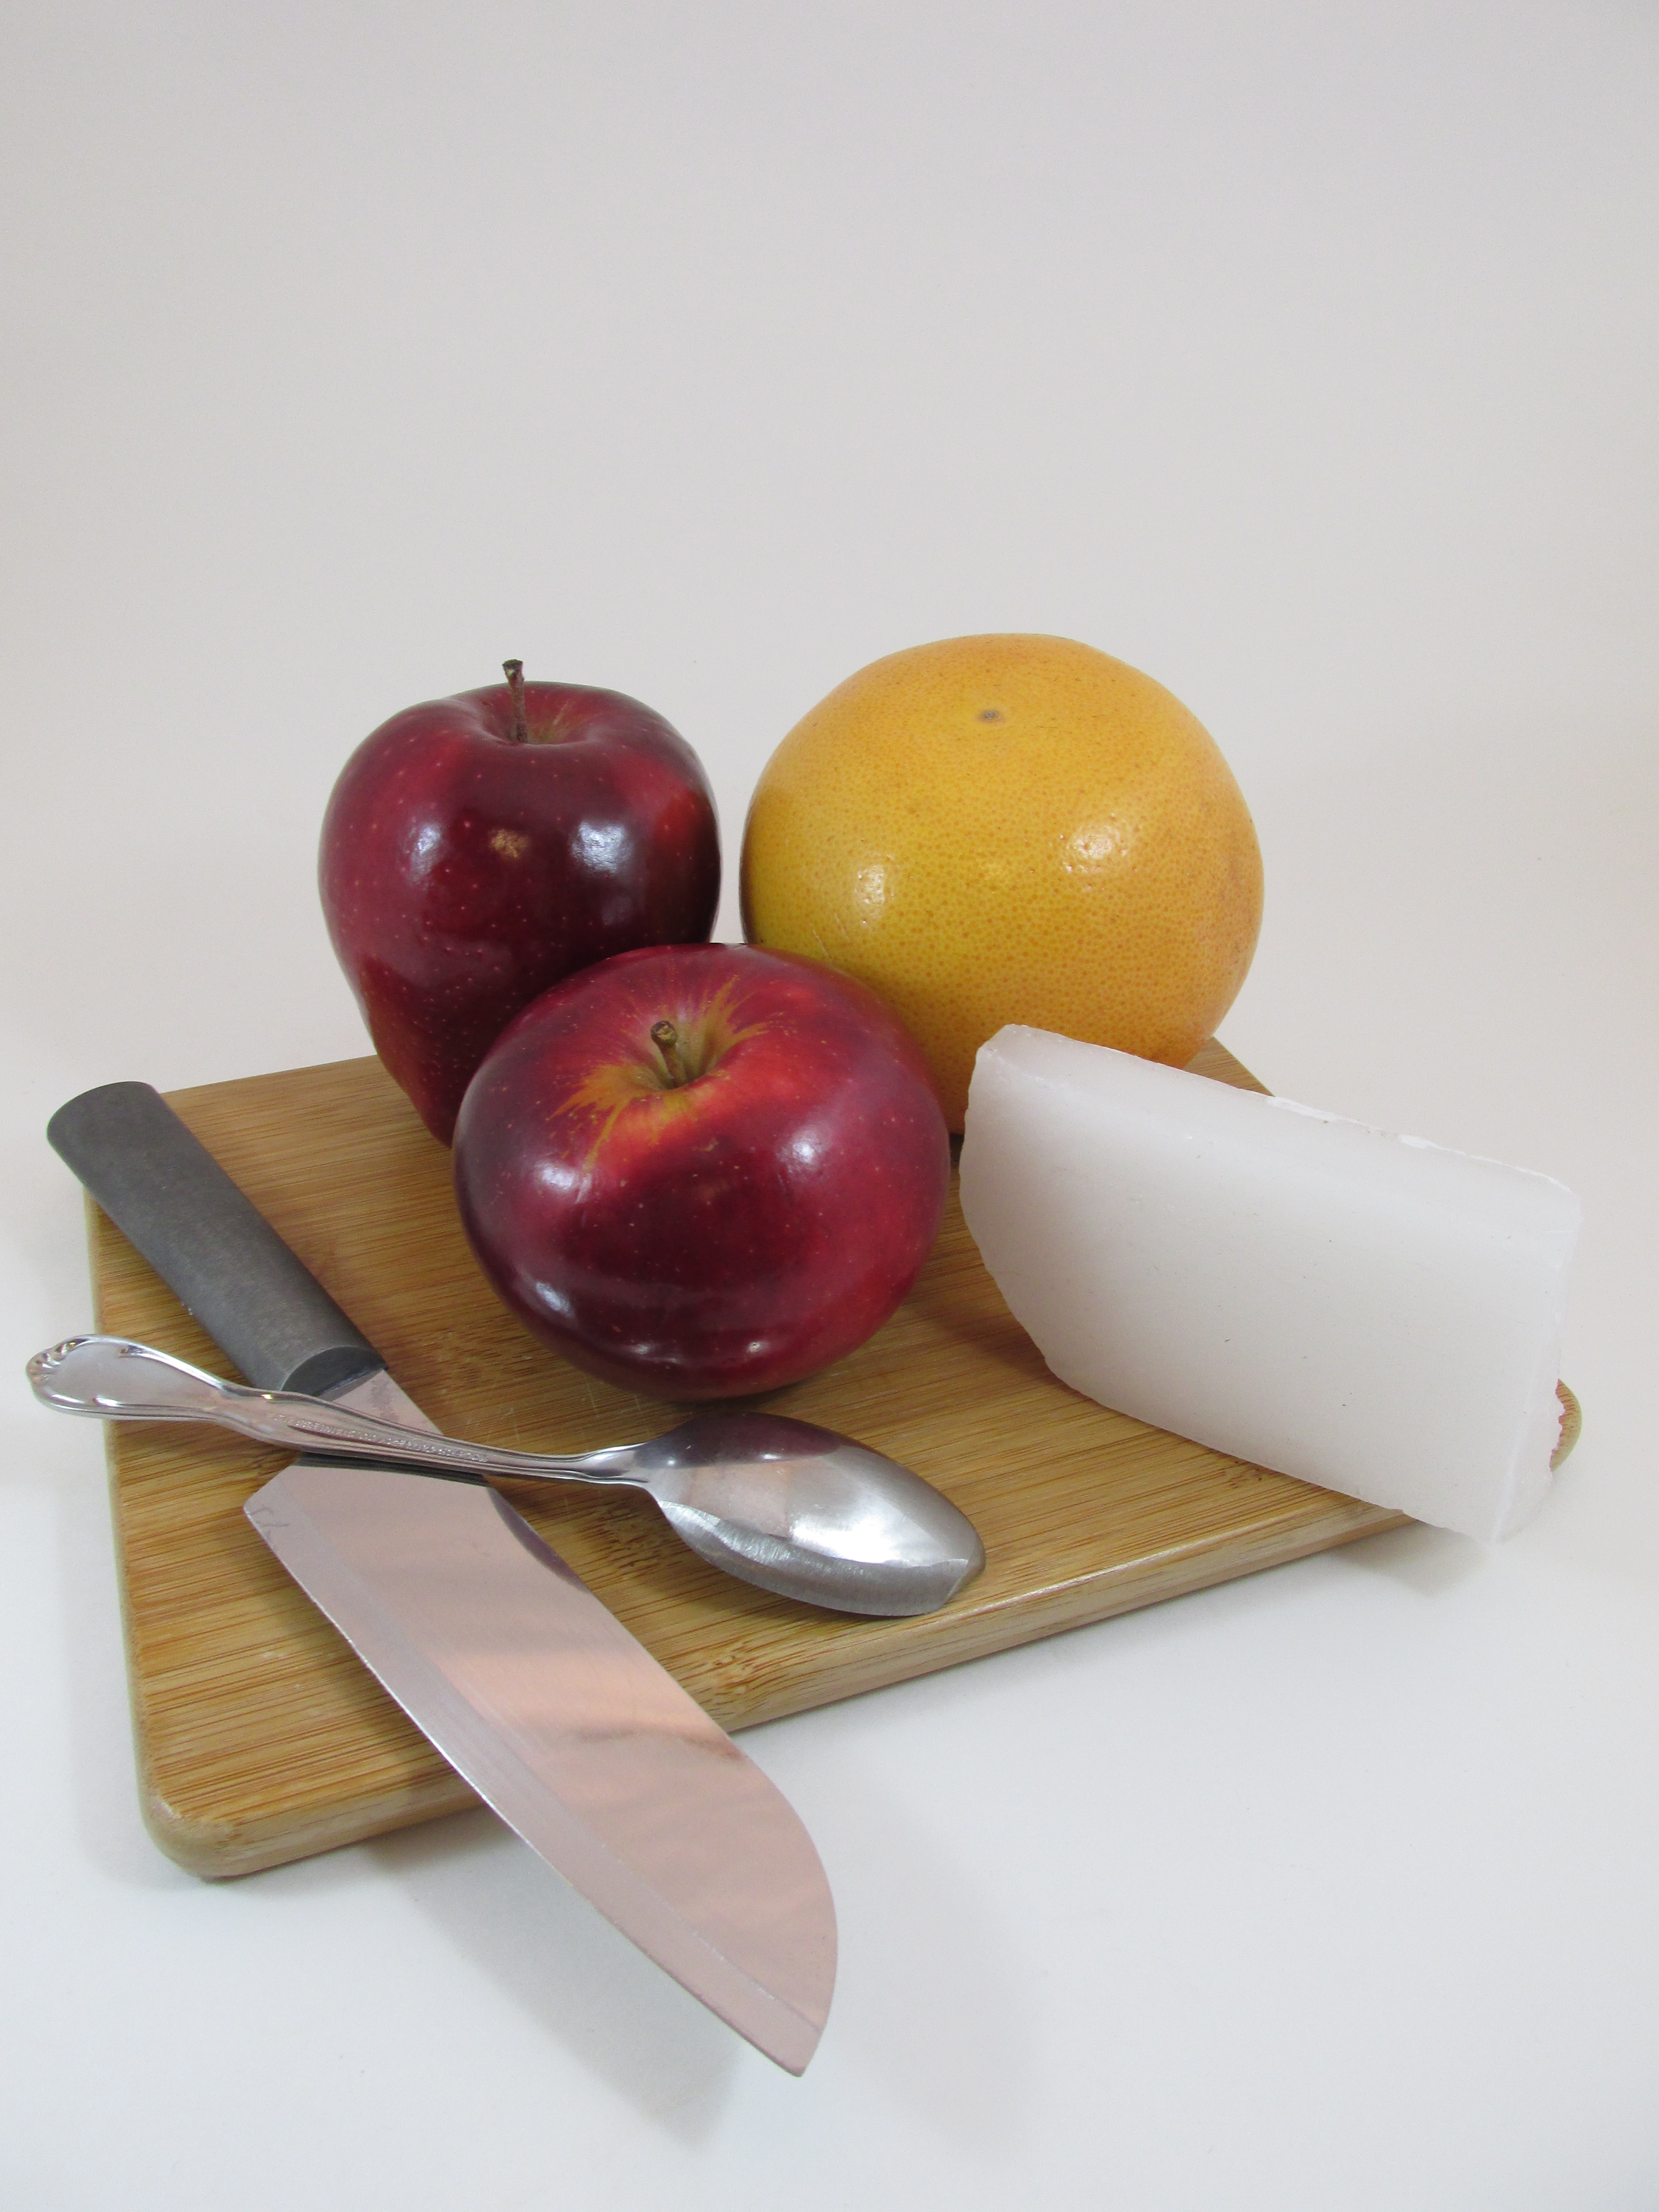 Picture of Making the Apple Cup - Ingredients and Tools